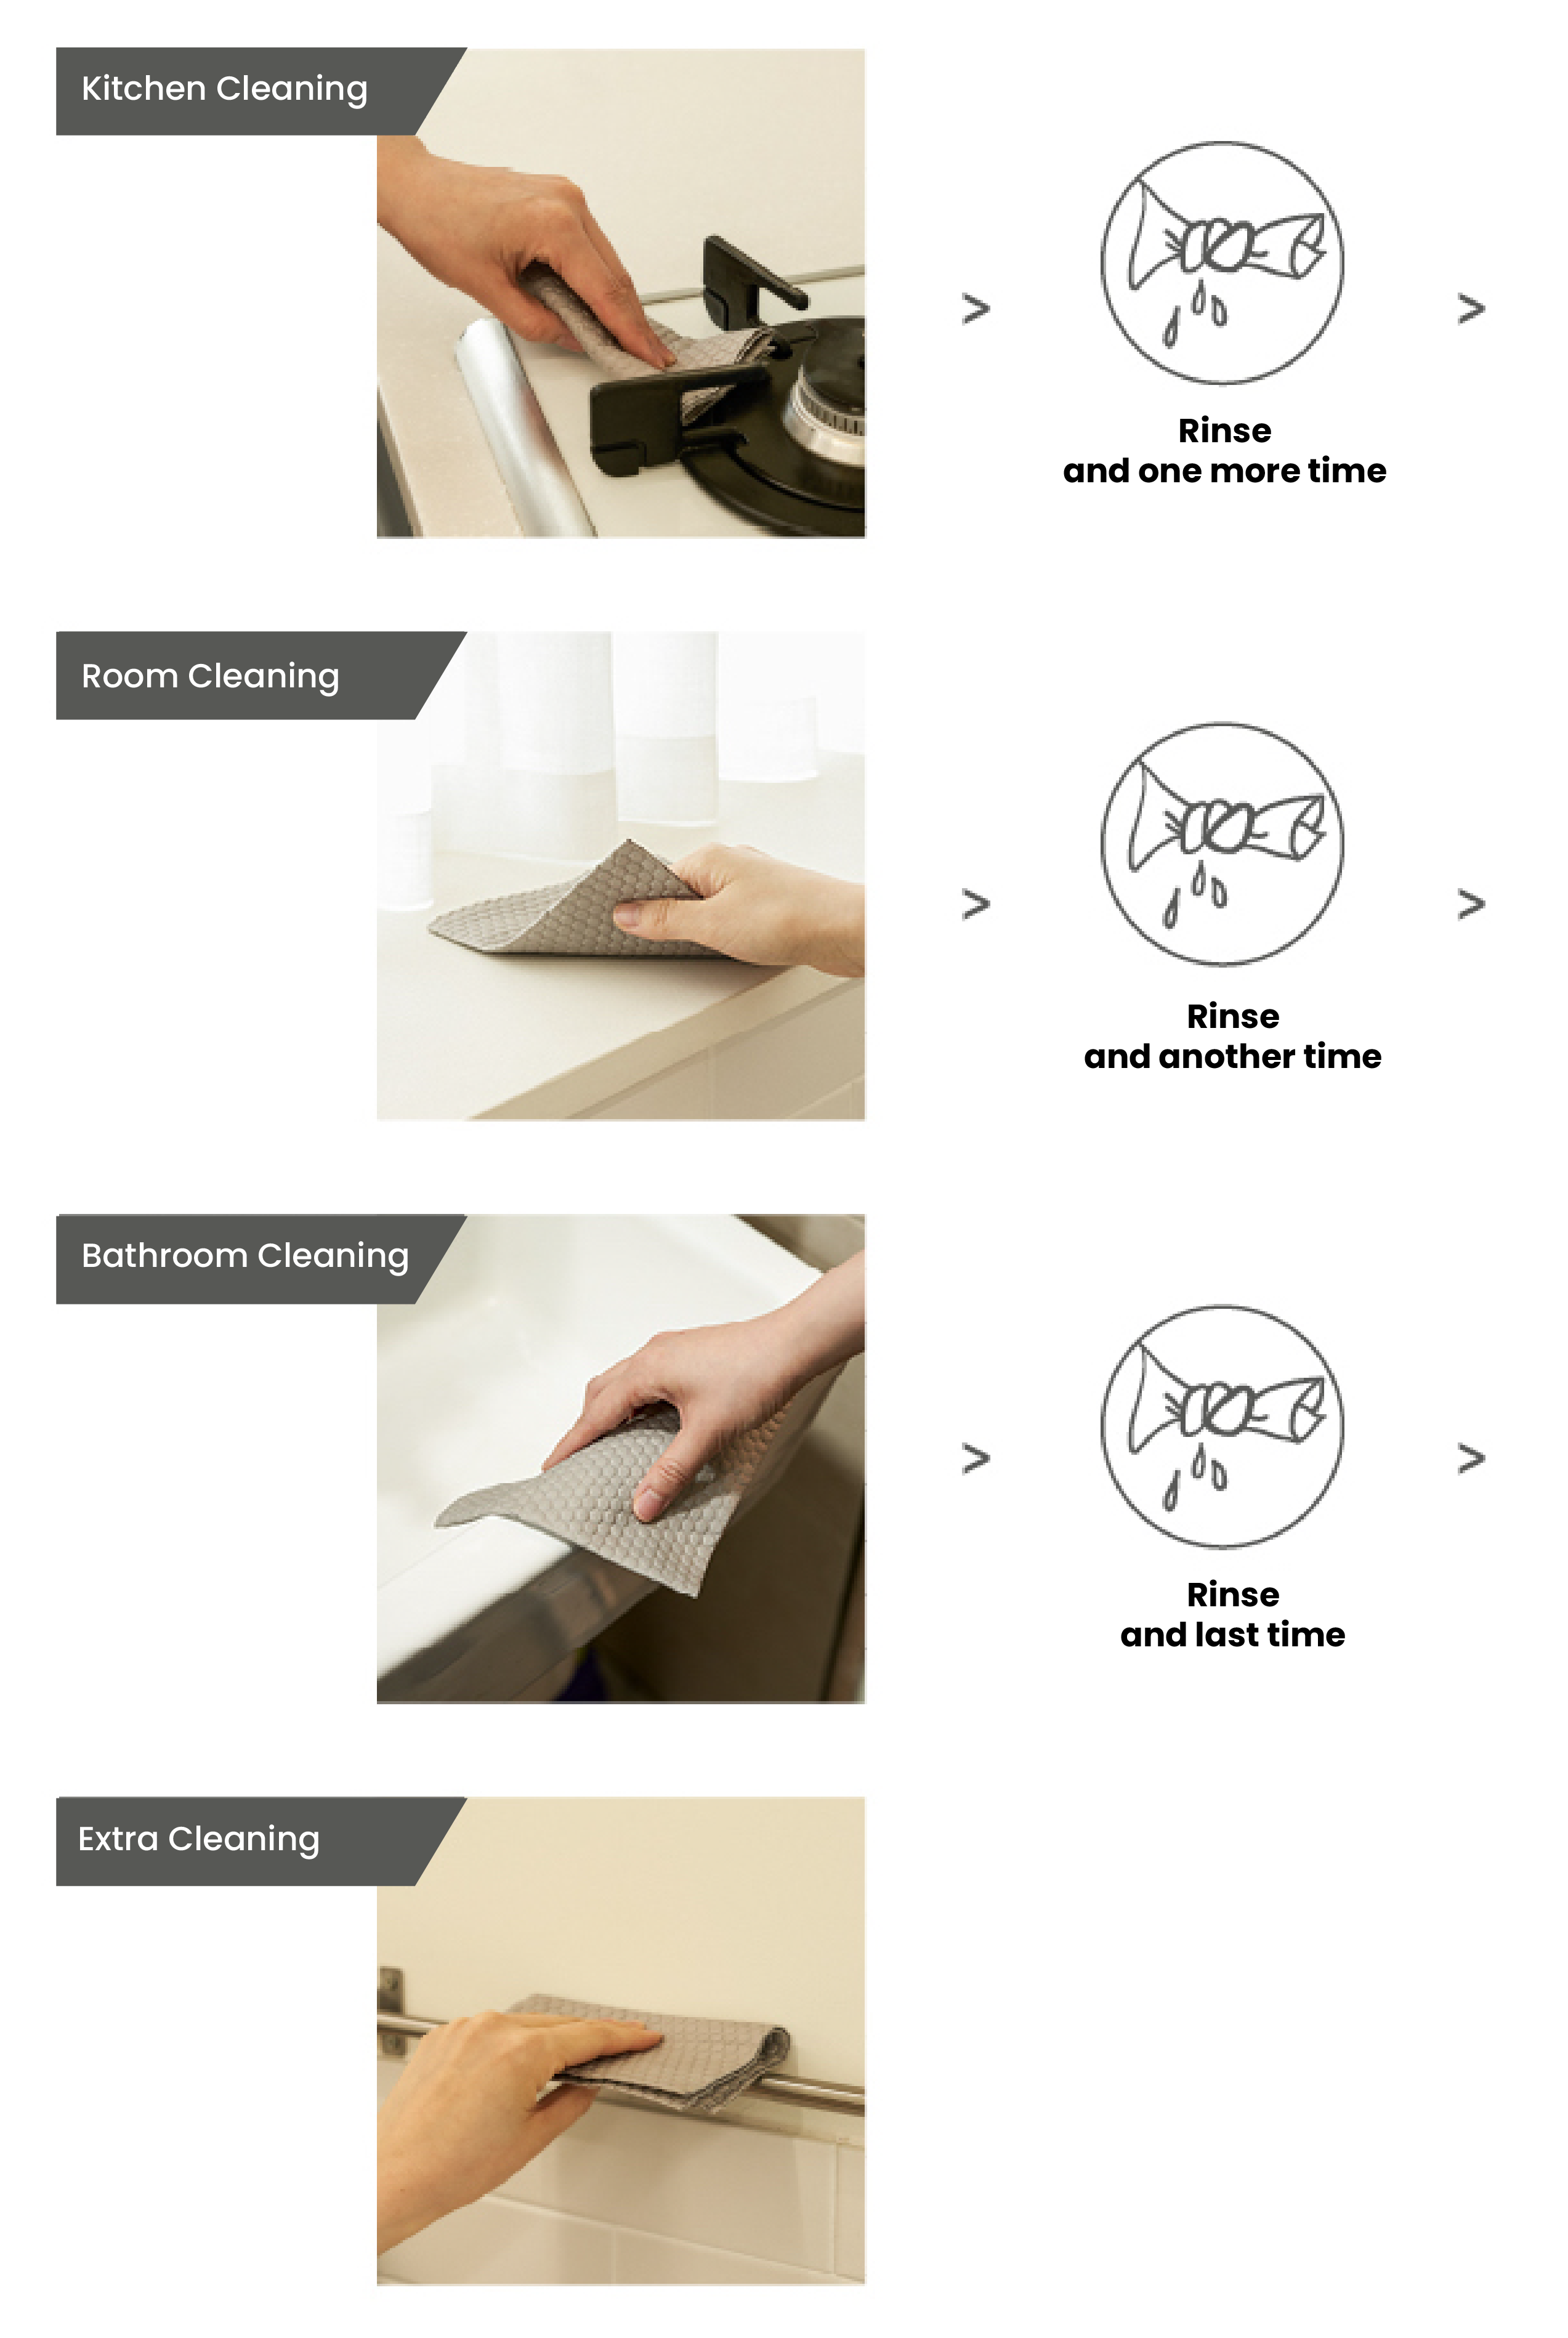 Demonstrating the various ways to use Dearcus ONEDAY Kitchen Towels. A versatile cleaning cloth that can be used to wipe dirt and grime off bathrooms, kitchens, and bedrooms.